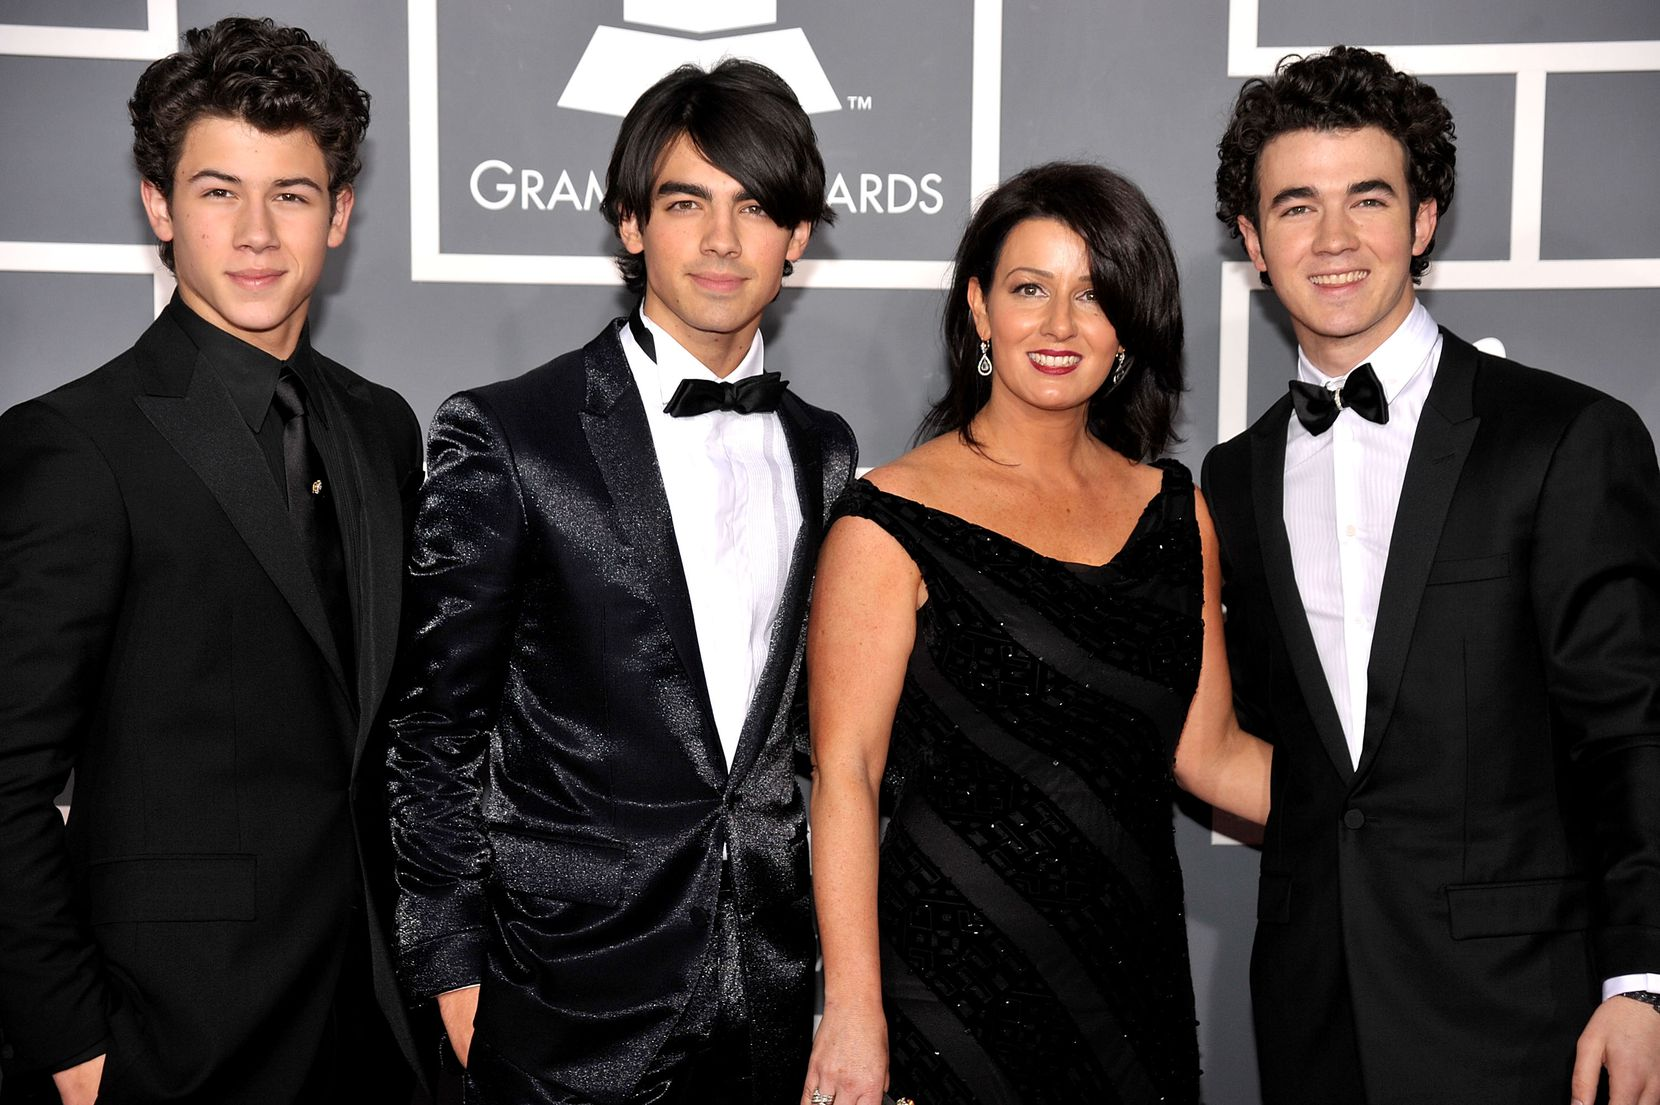 Musicians Nick Jonas, Joe Jonas and Kevin Jonas of The Jonas Brothers with mother mother Denise Jonas arrive at the 51st Annual Grammy Awards held at the Staples Center on February 8, 2009 in Los Angeles, California.